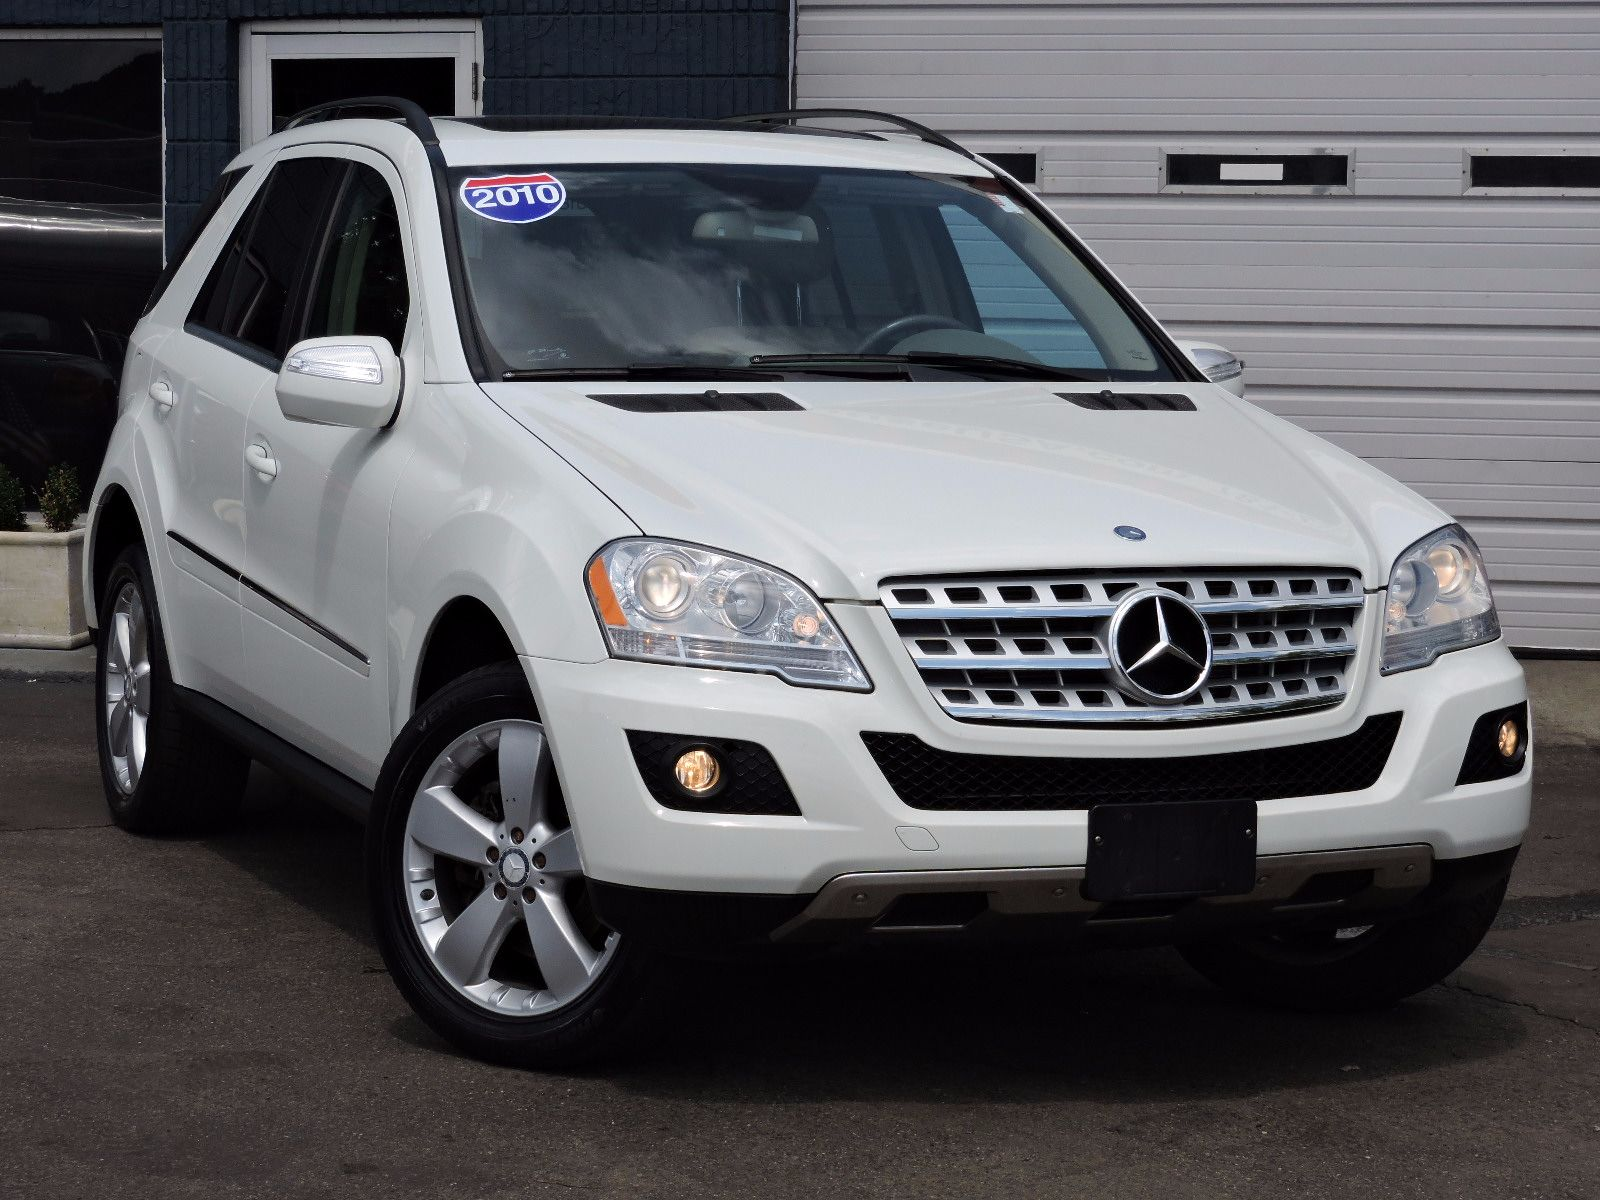 used 2010 mercedes benz ml 350 lt at saugus auto mall. Black Bedroom Furniture Sets. Home Design Ideas